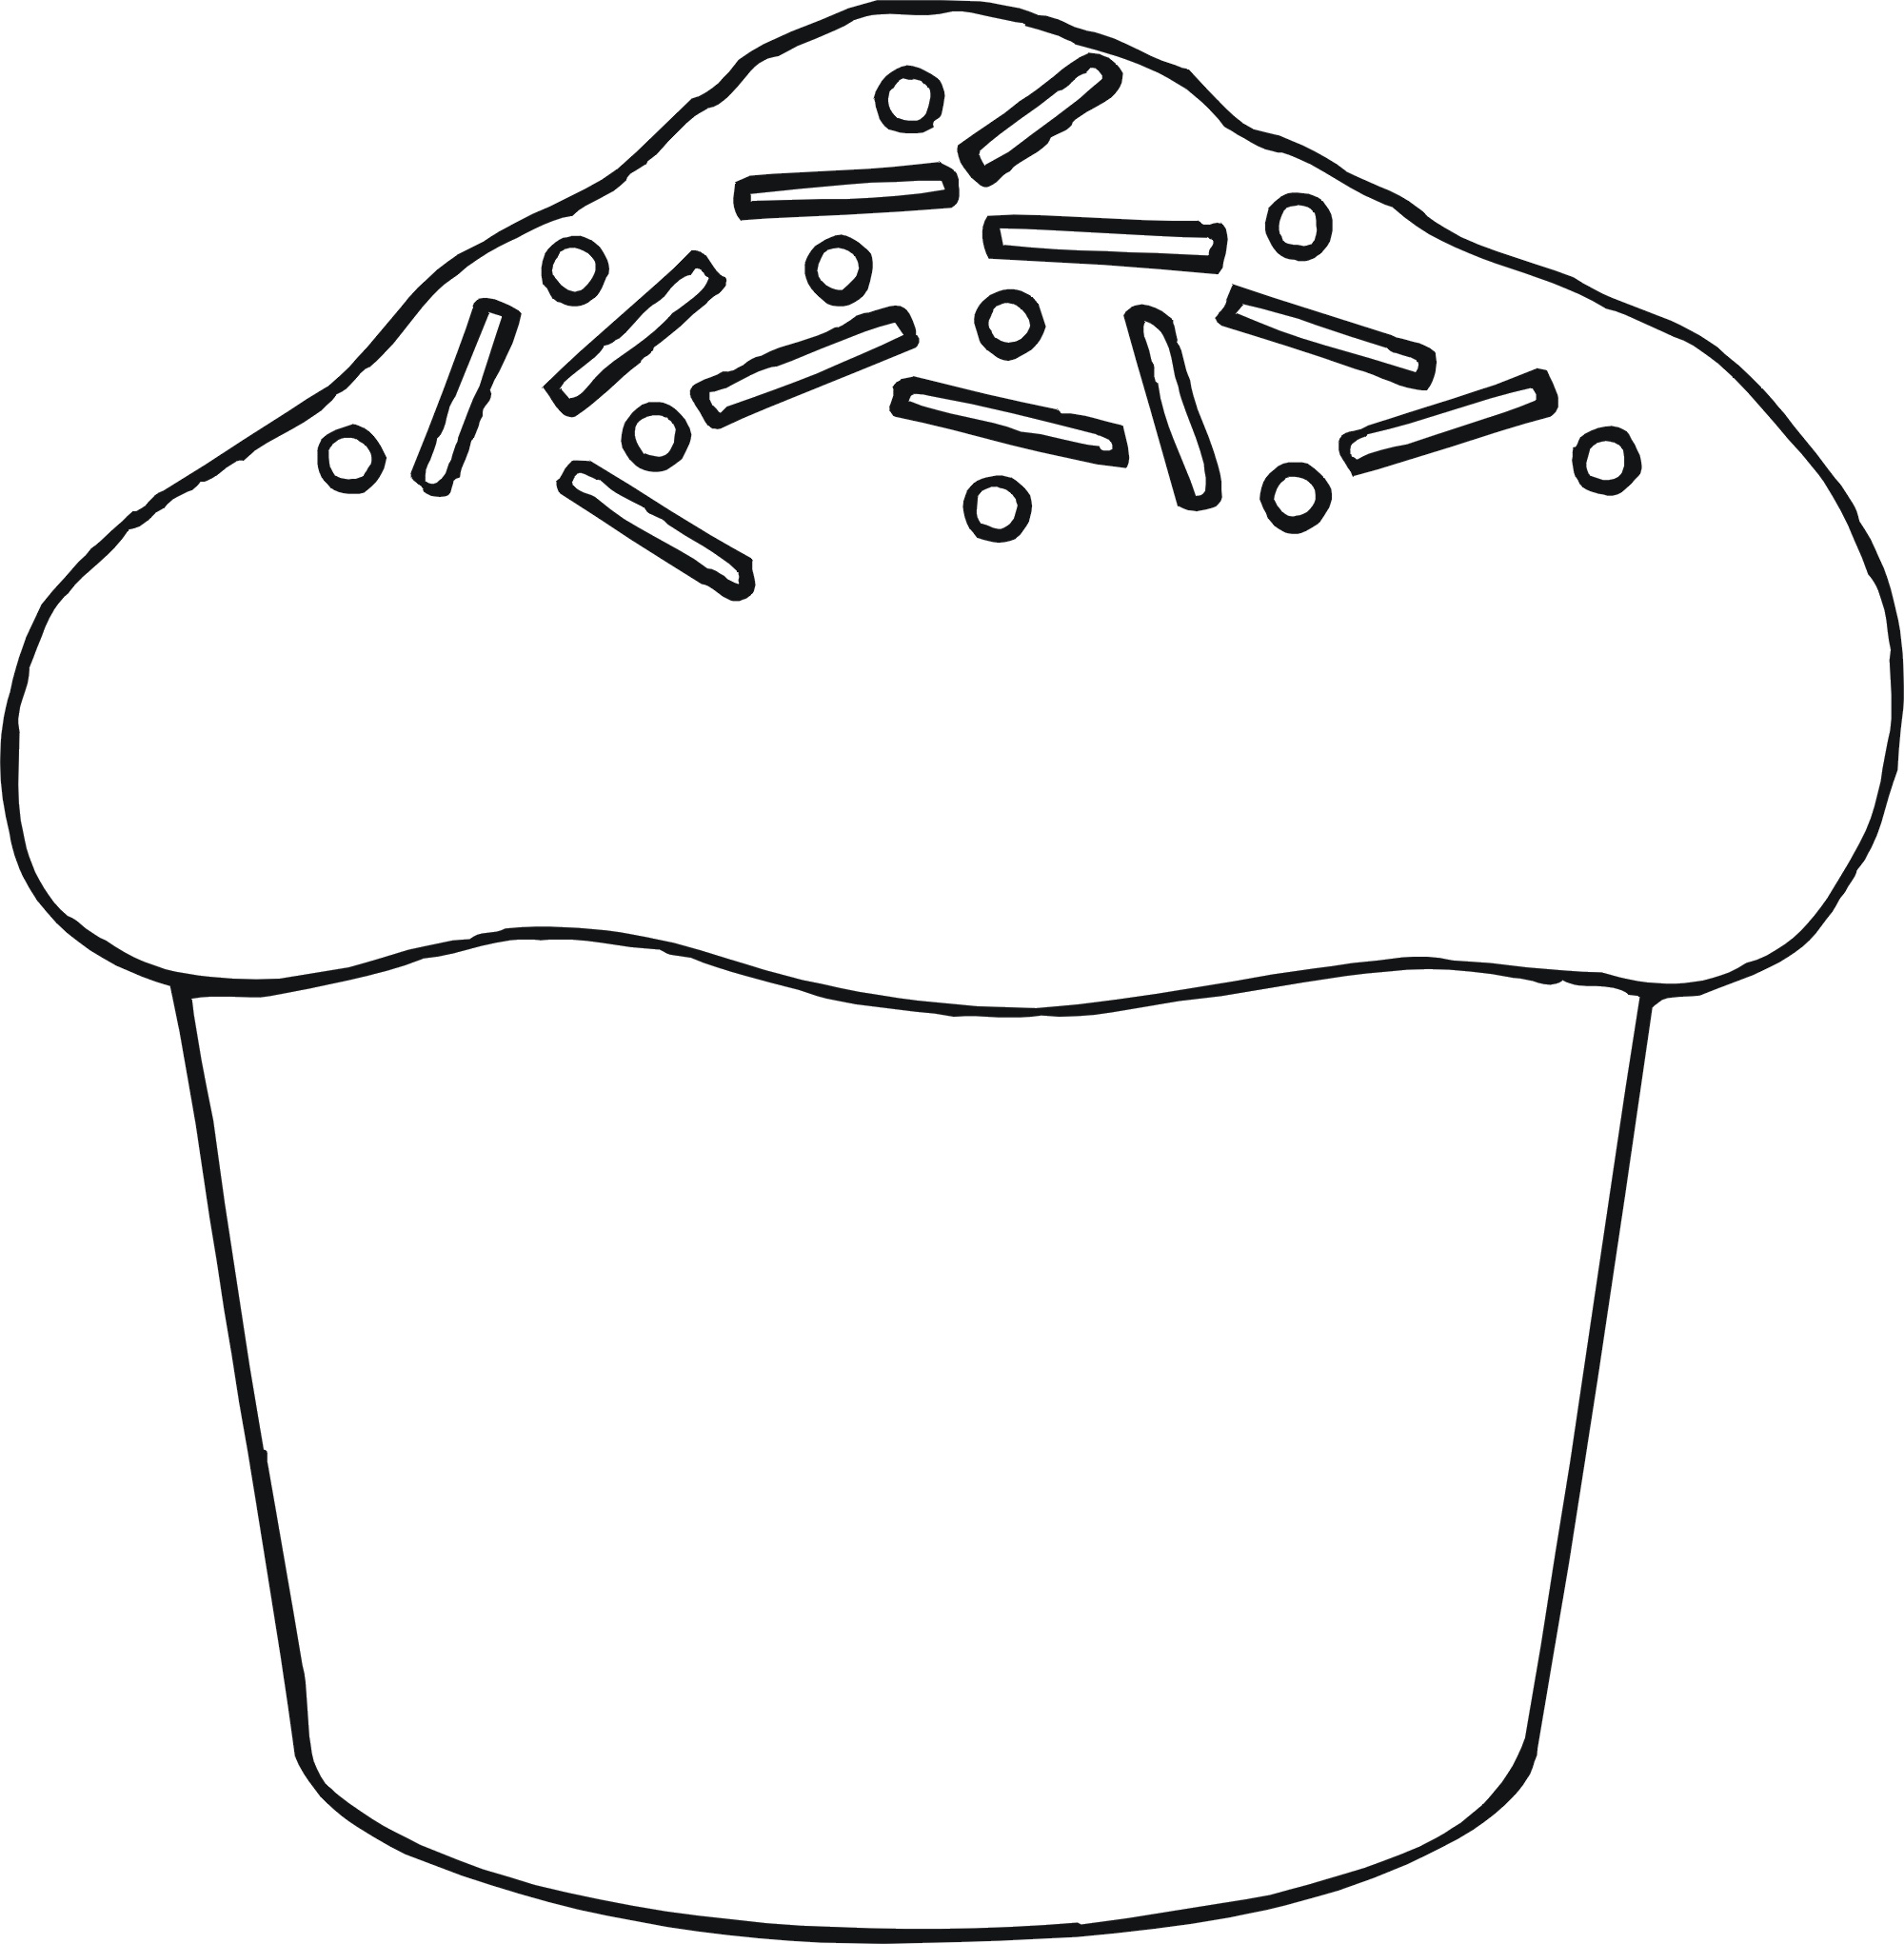 muffin pictures to color muffin or cupcake free coloring pages coloring pages to color muffin pictures